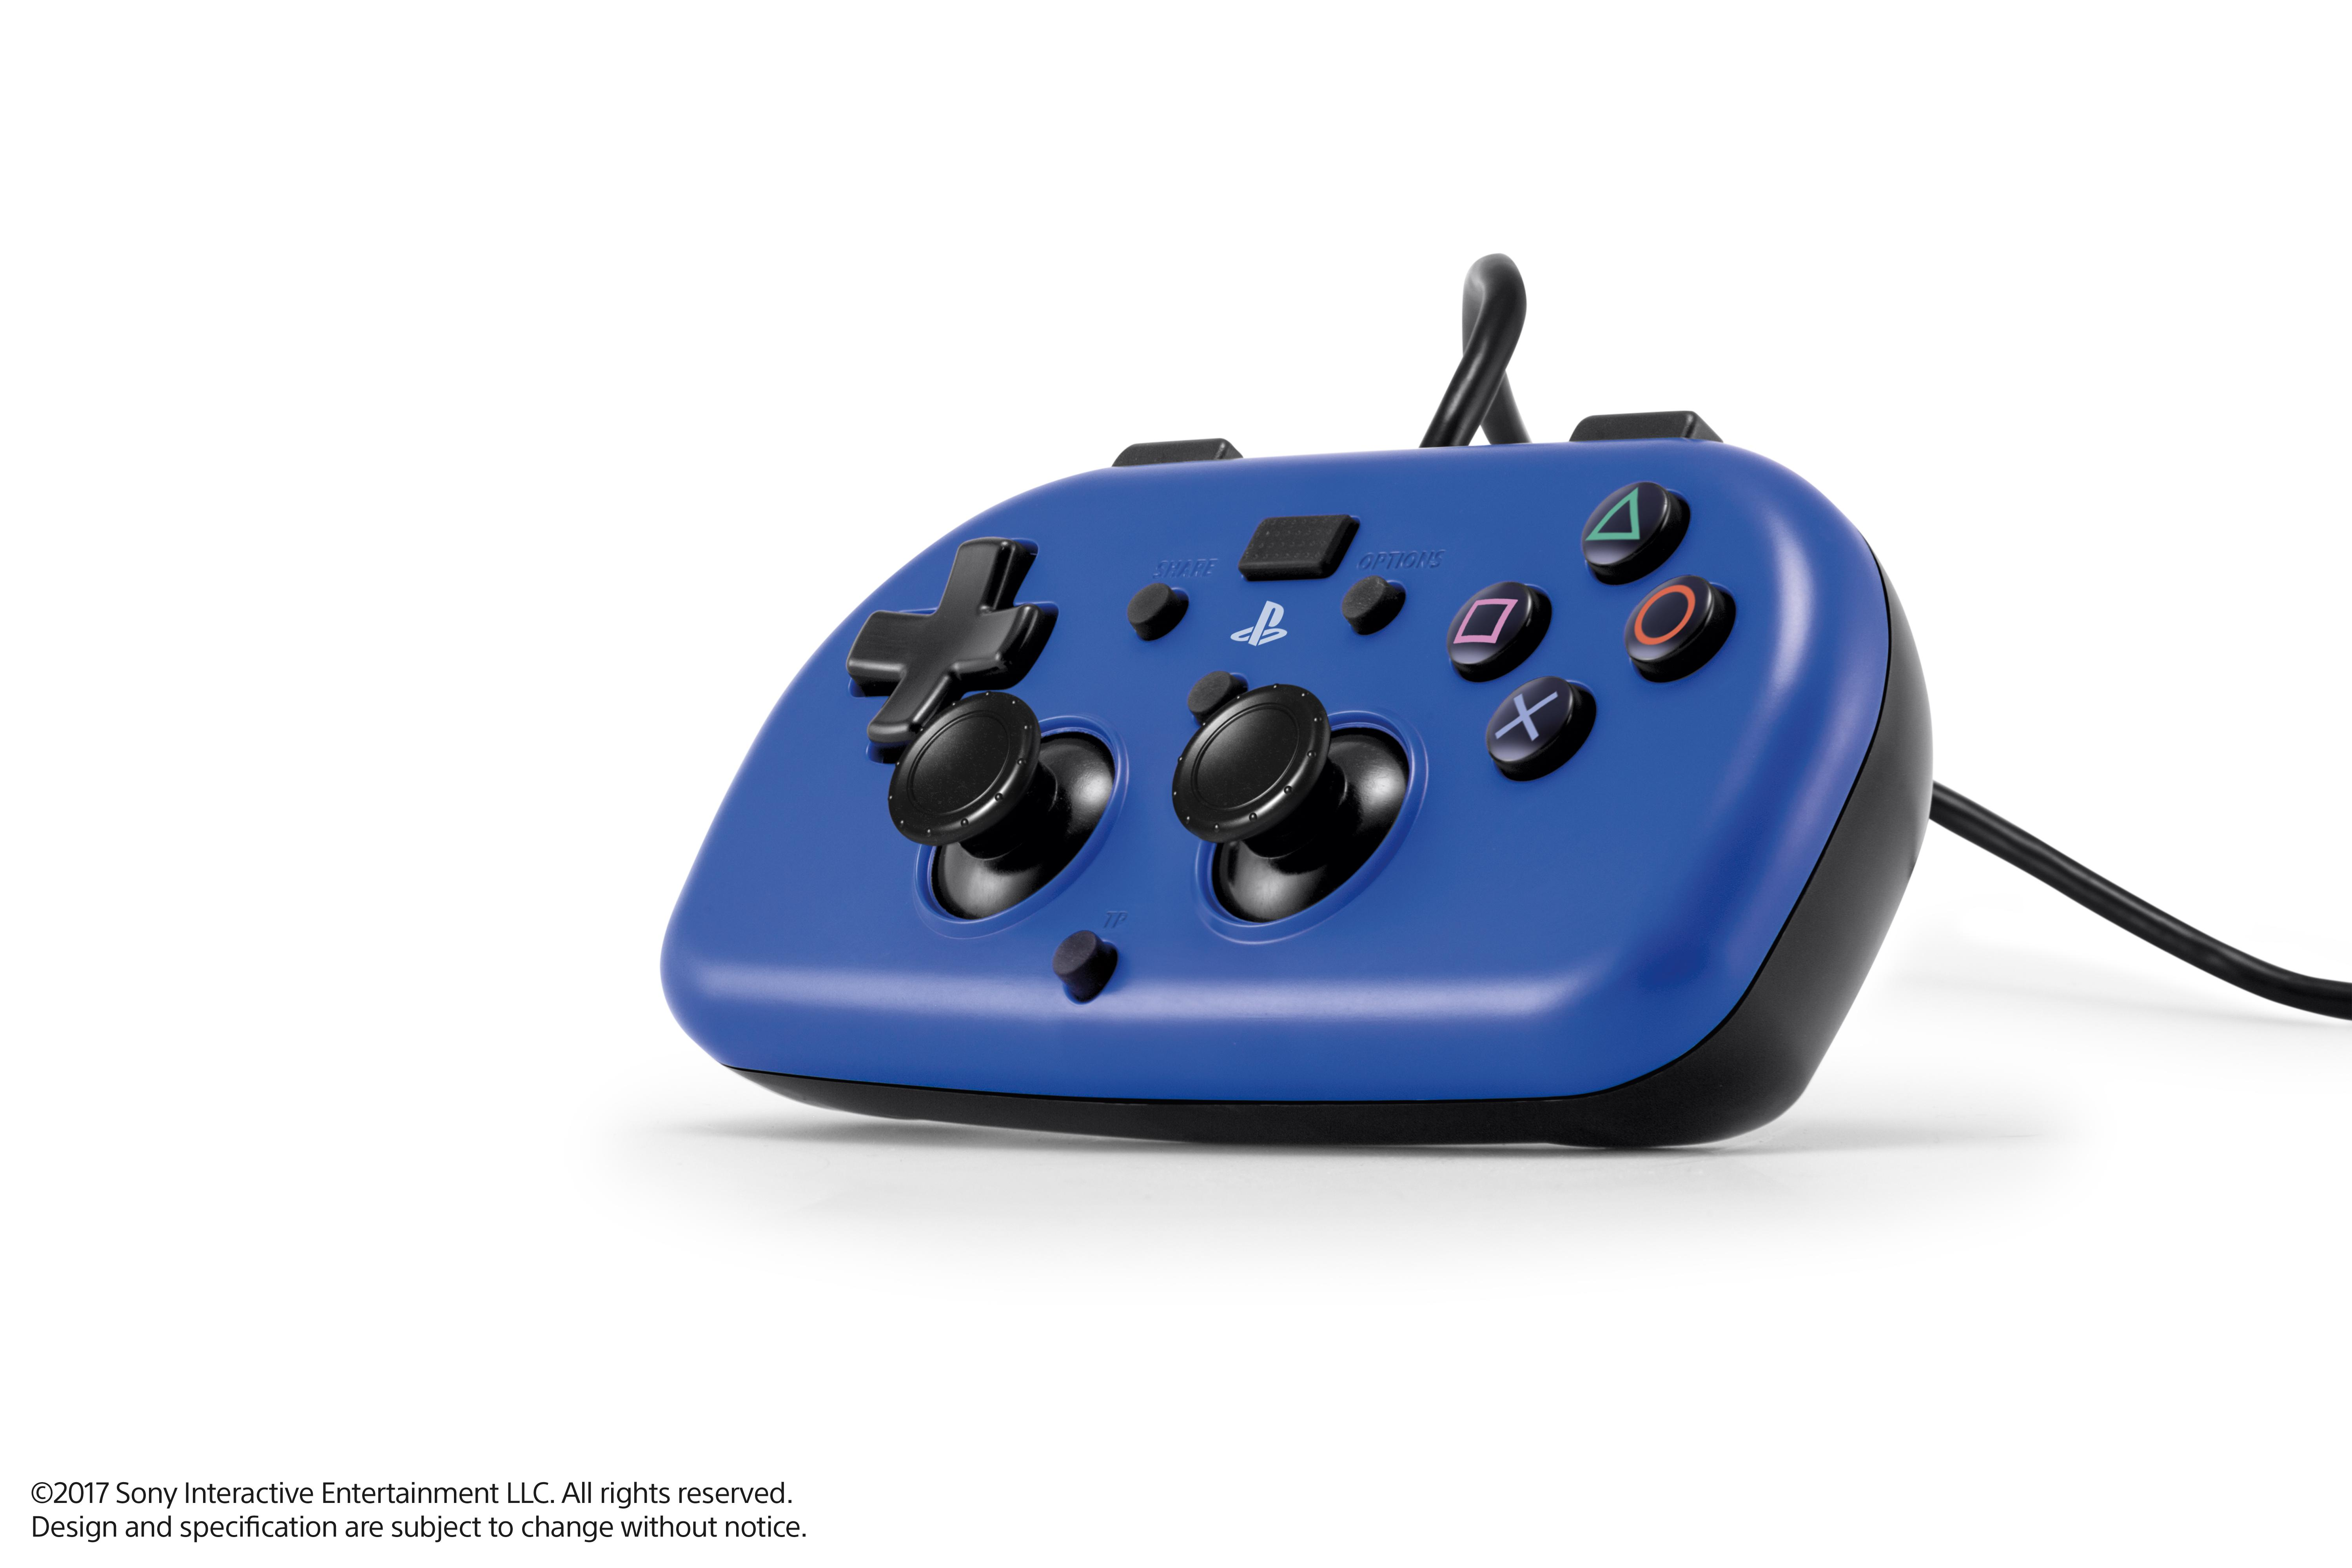 Amazon.com: PlayStation 4 Mini Wired Gamepad: Video Games